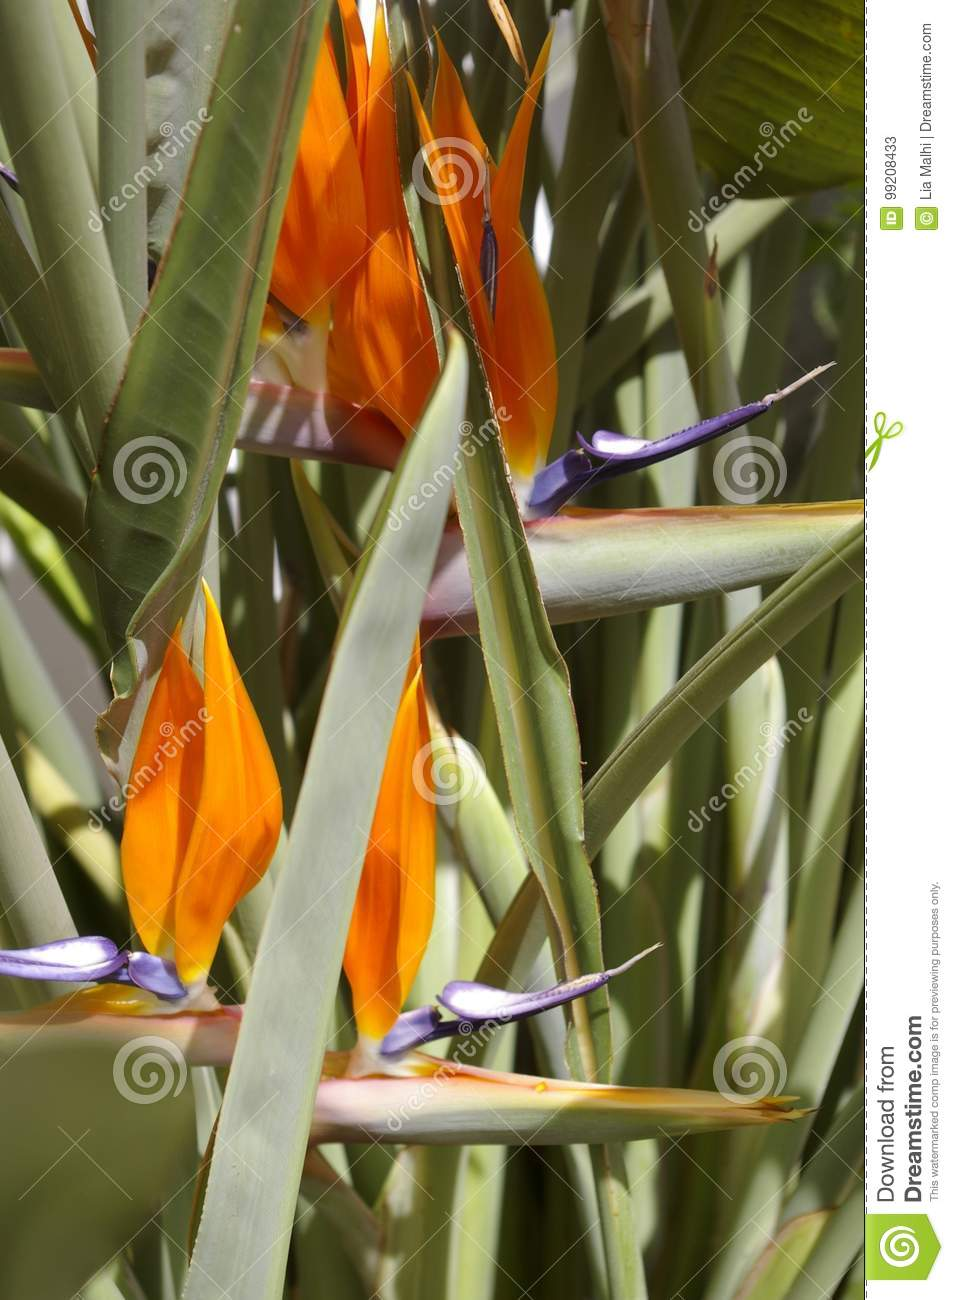 flower bird of paradise stock image image of geometric 99208433